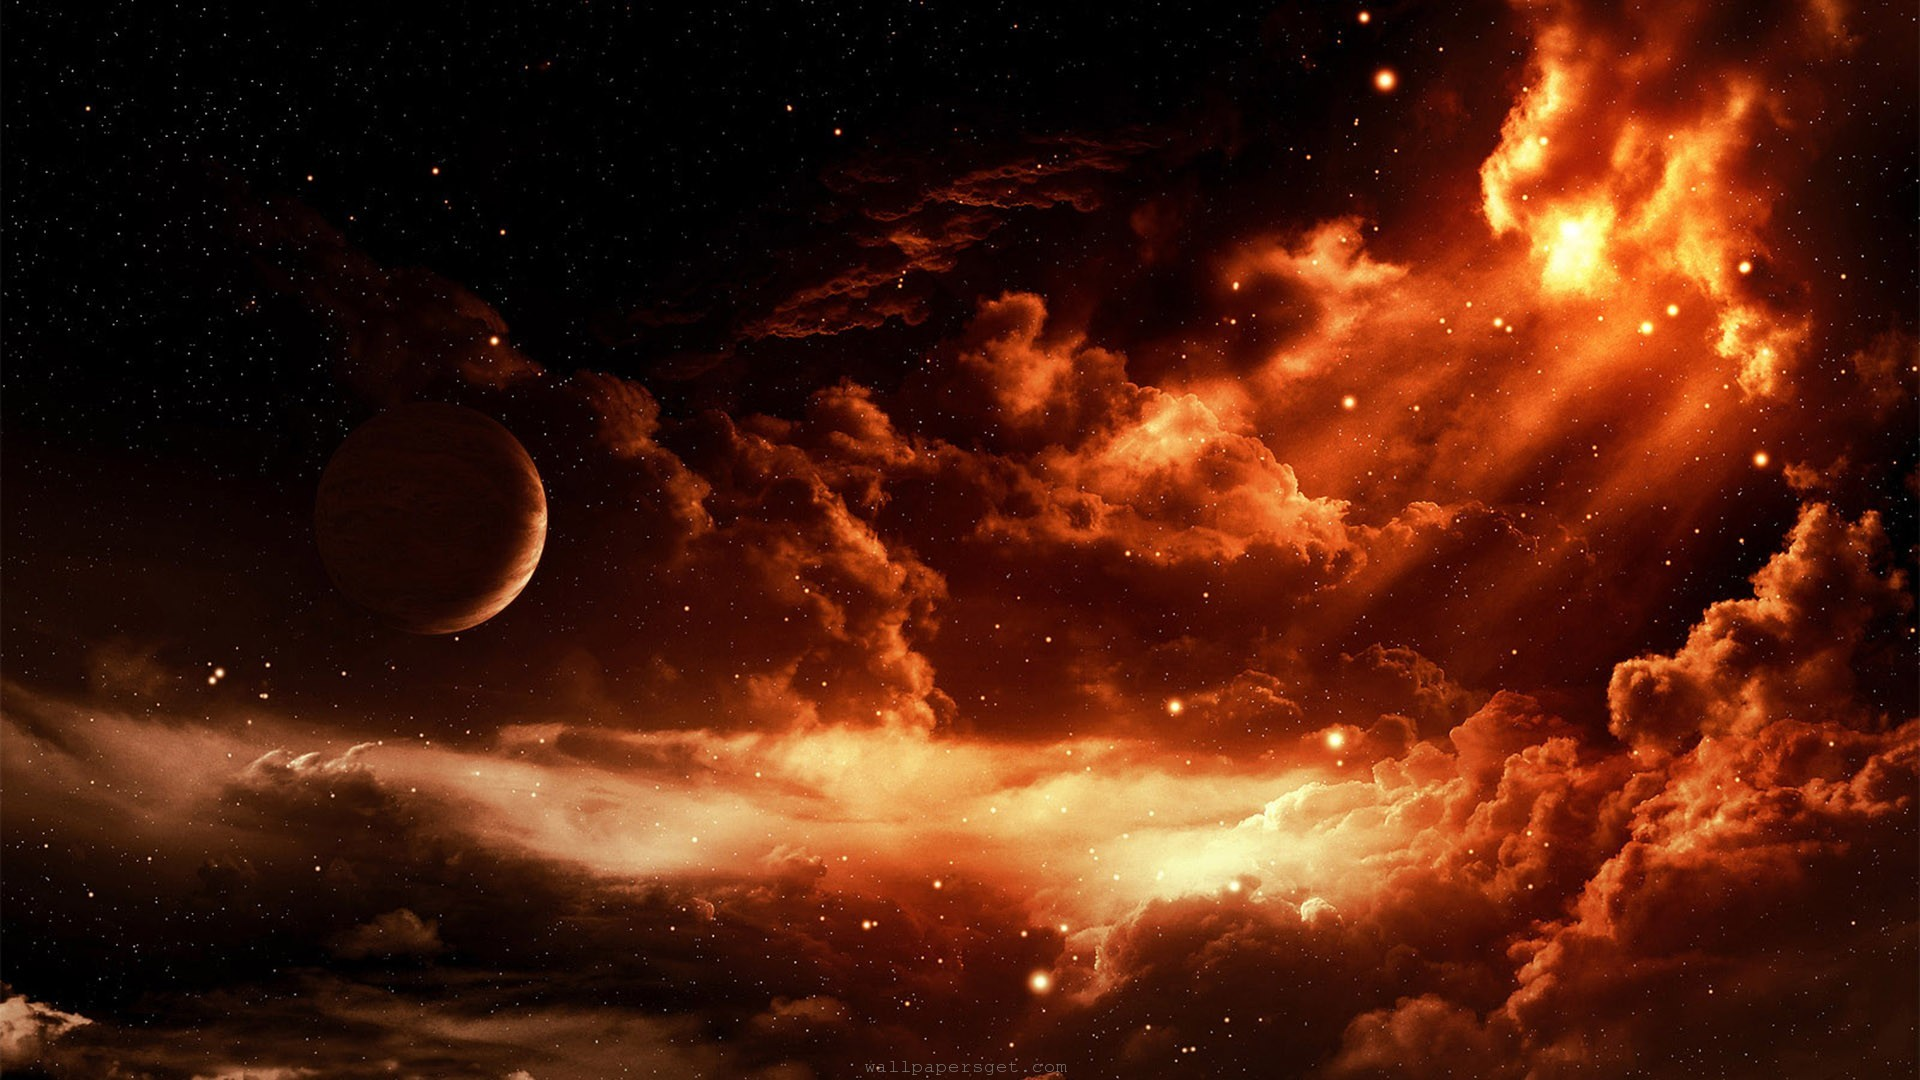 1080p wallpaper Space Download free amazing full HD